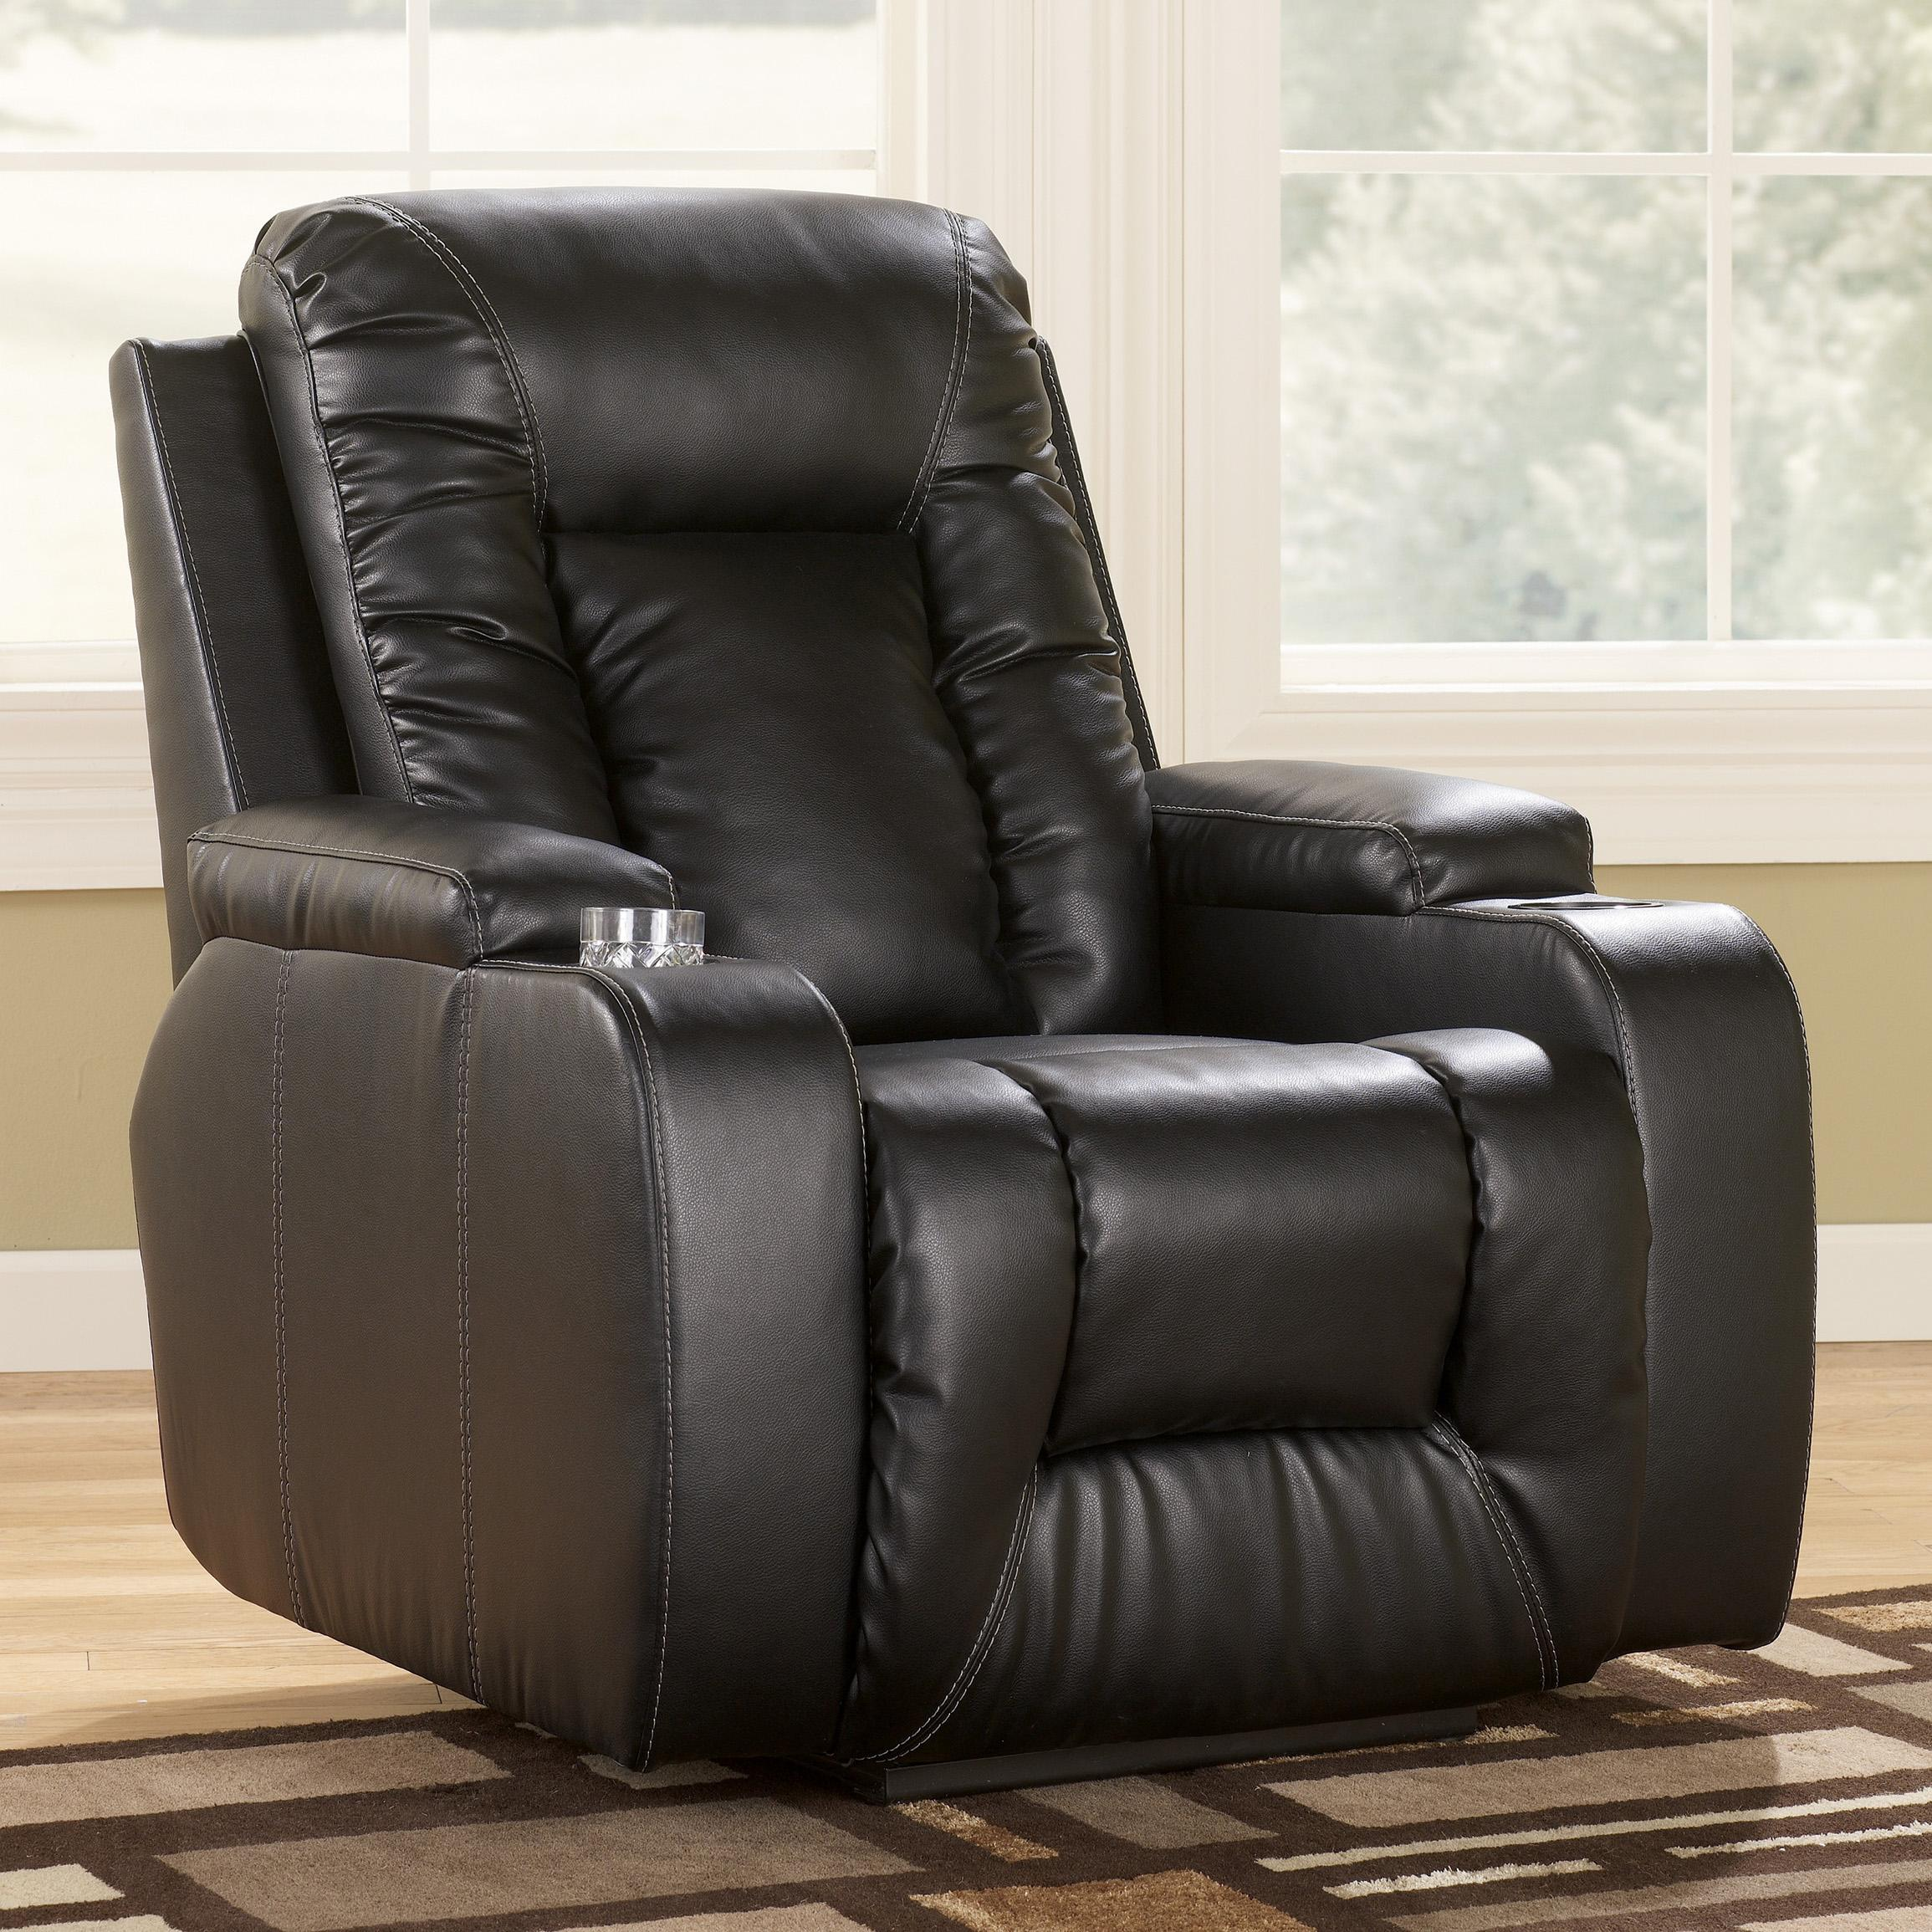 Signature Design by Ashley Matinee DuraBlend® - Eclipse Zero Wall Recliner - Item Number: 8740129